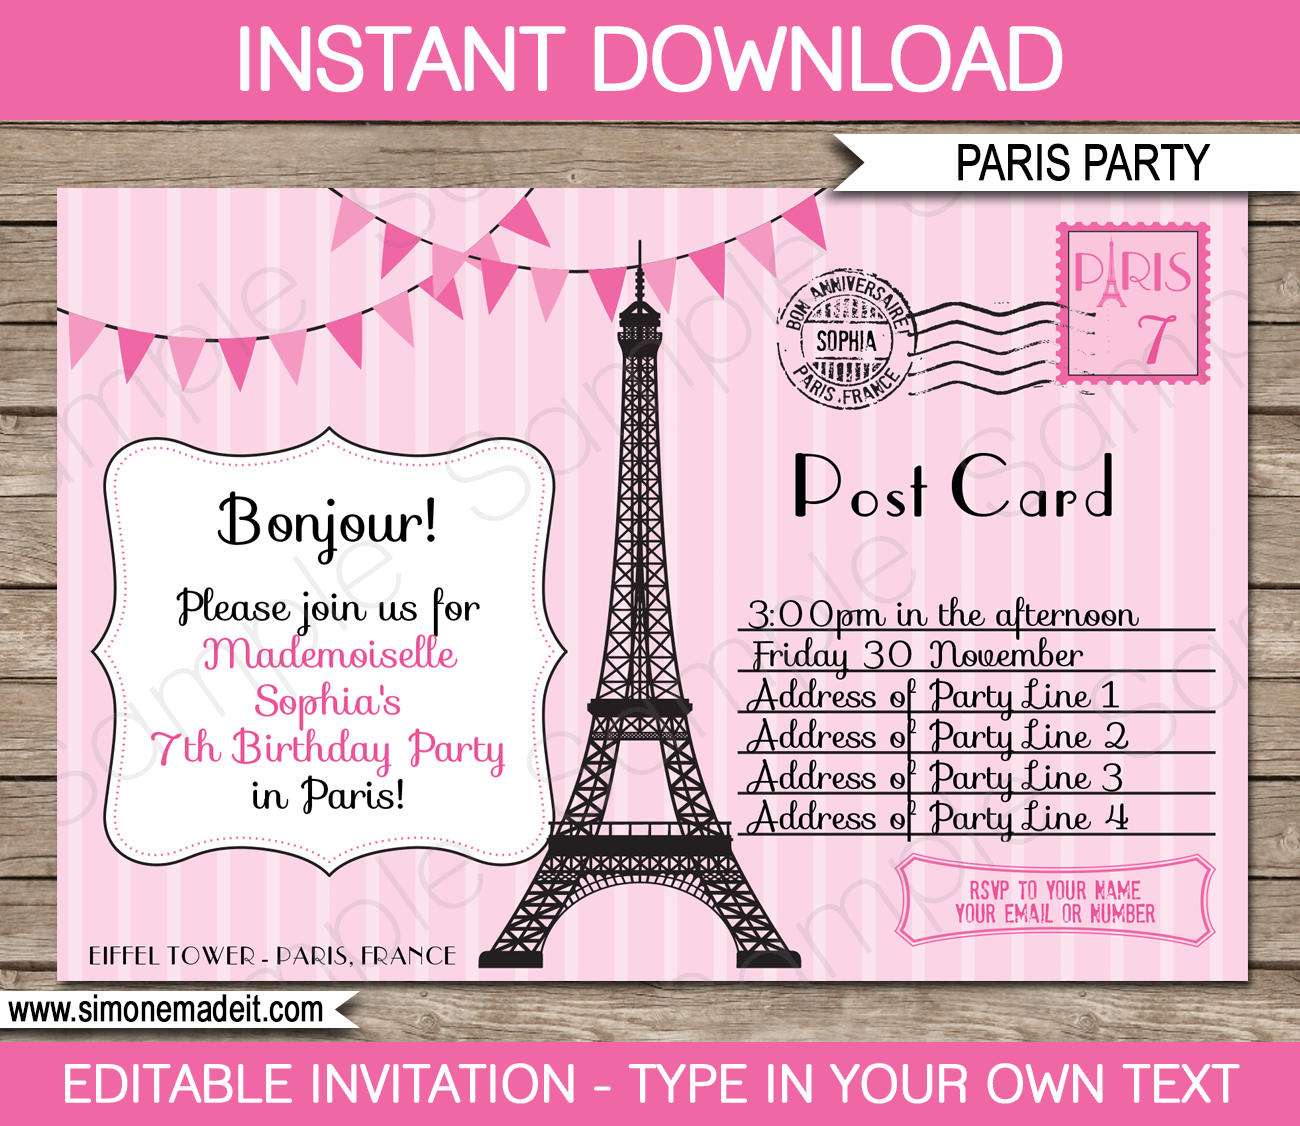 Paris Party Invitations Paris Party Invitations Using An Excellent